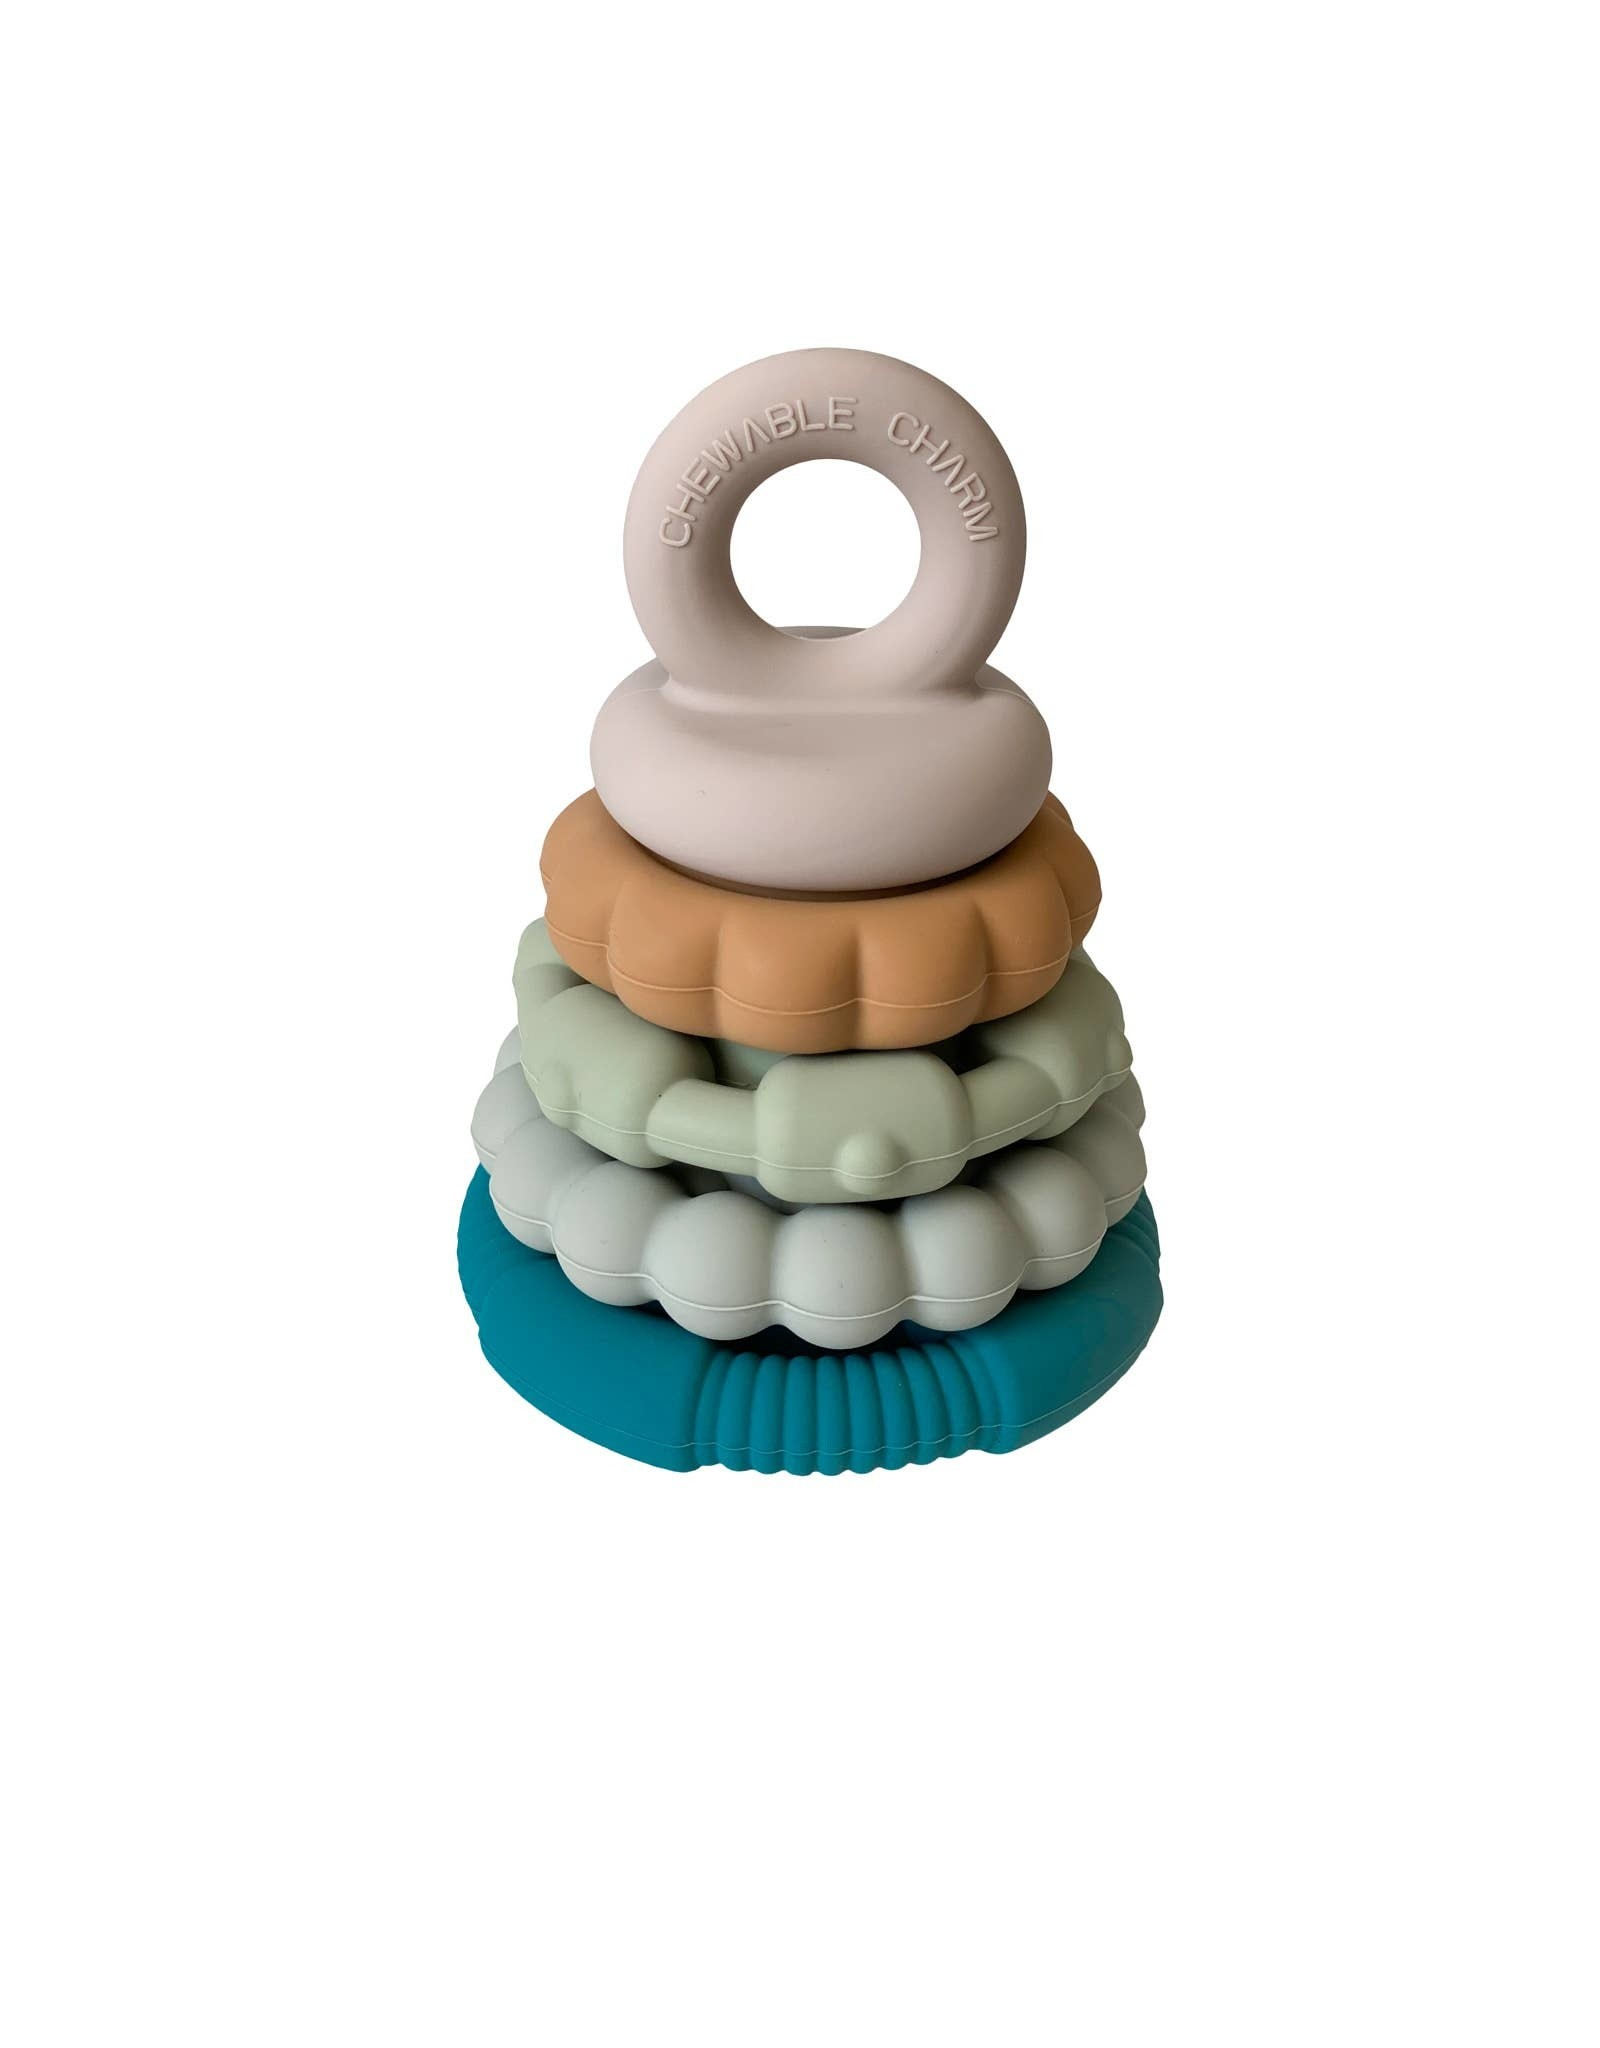 Chewable Charm Chewable Charm- Silicone Teether Stacker: River